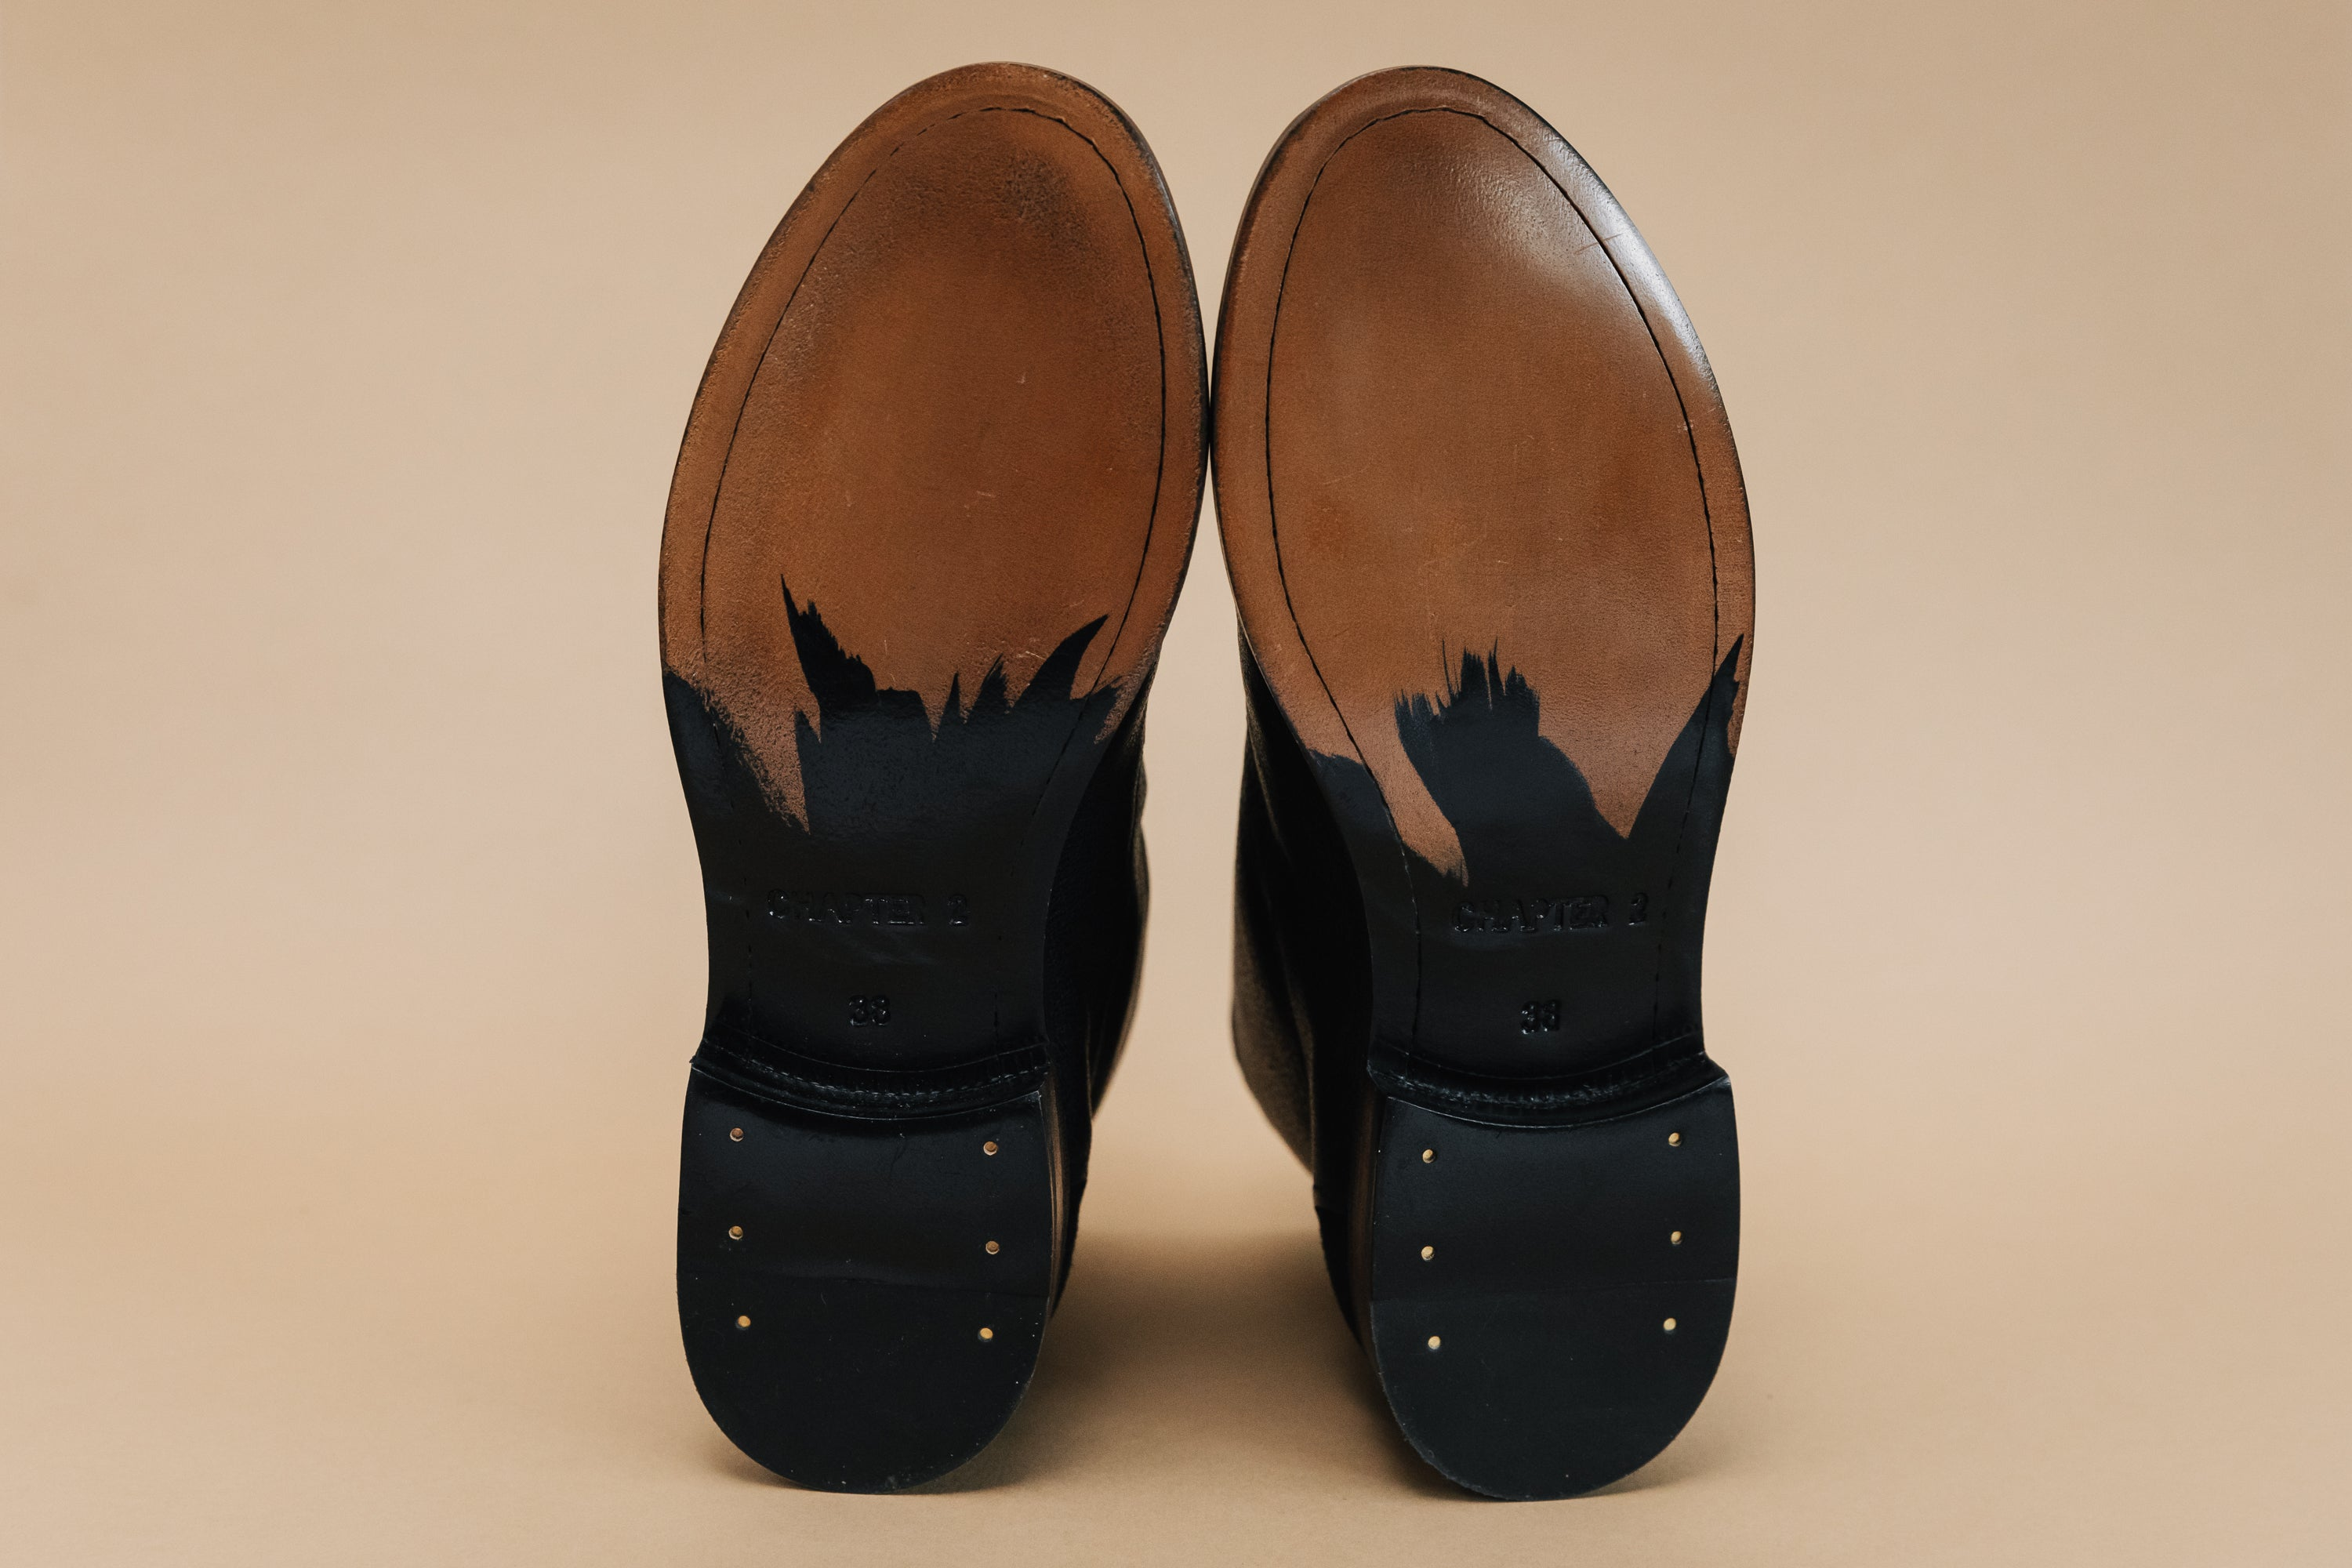 CHAPTER 2 leather sole